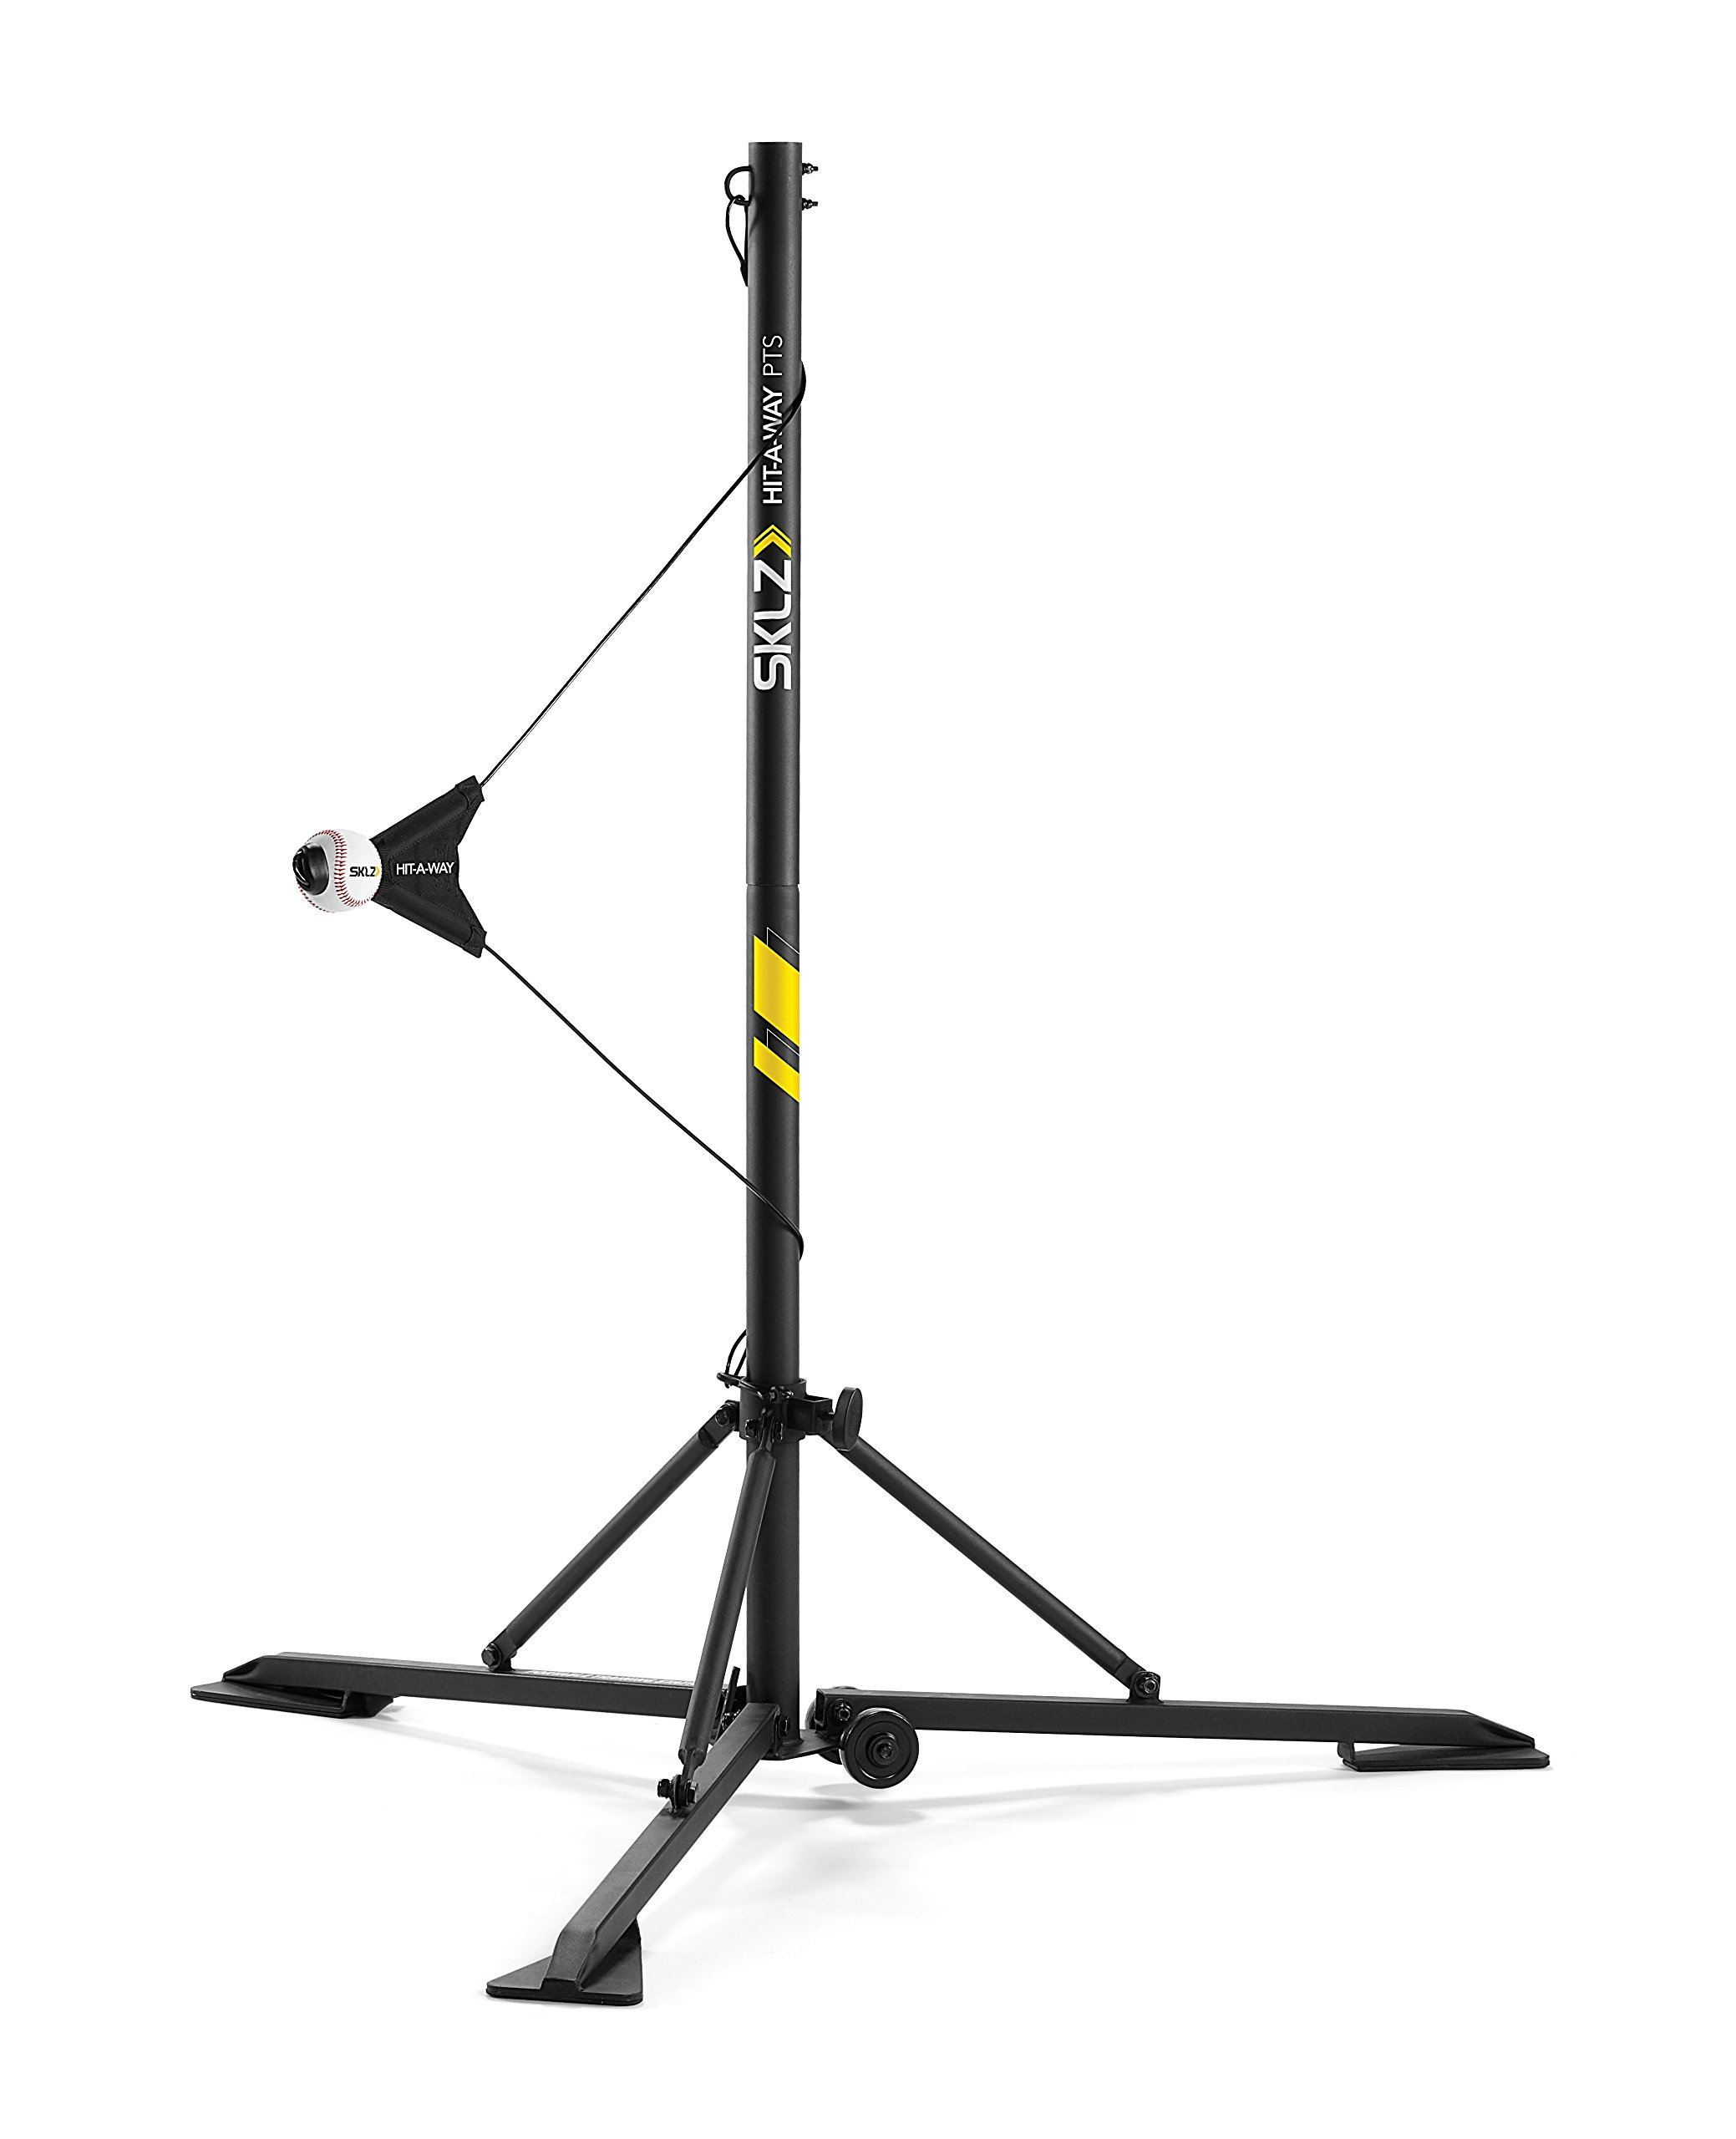 SKLZ Hit-A-Way Portable Baseball Trainer for Players Ages 7+ by SKLZ